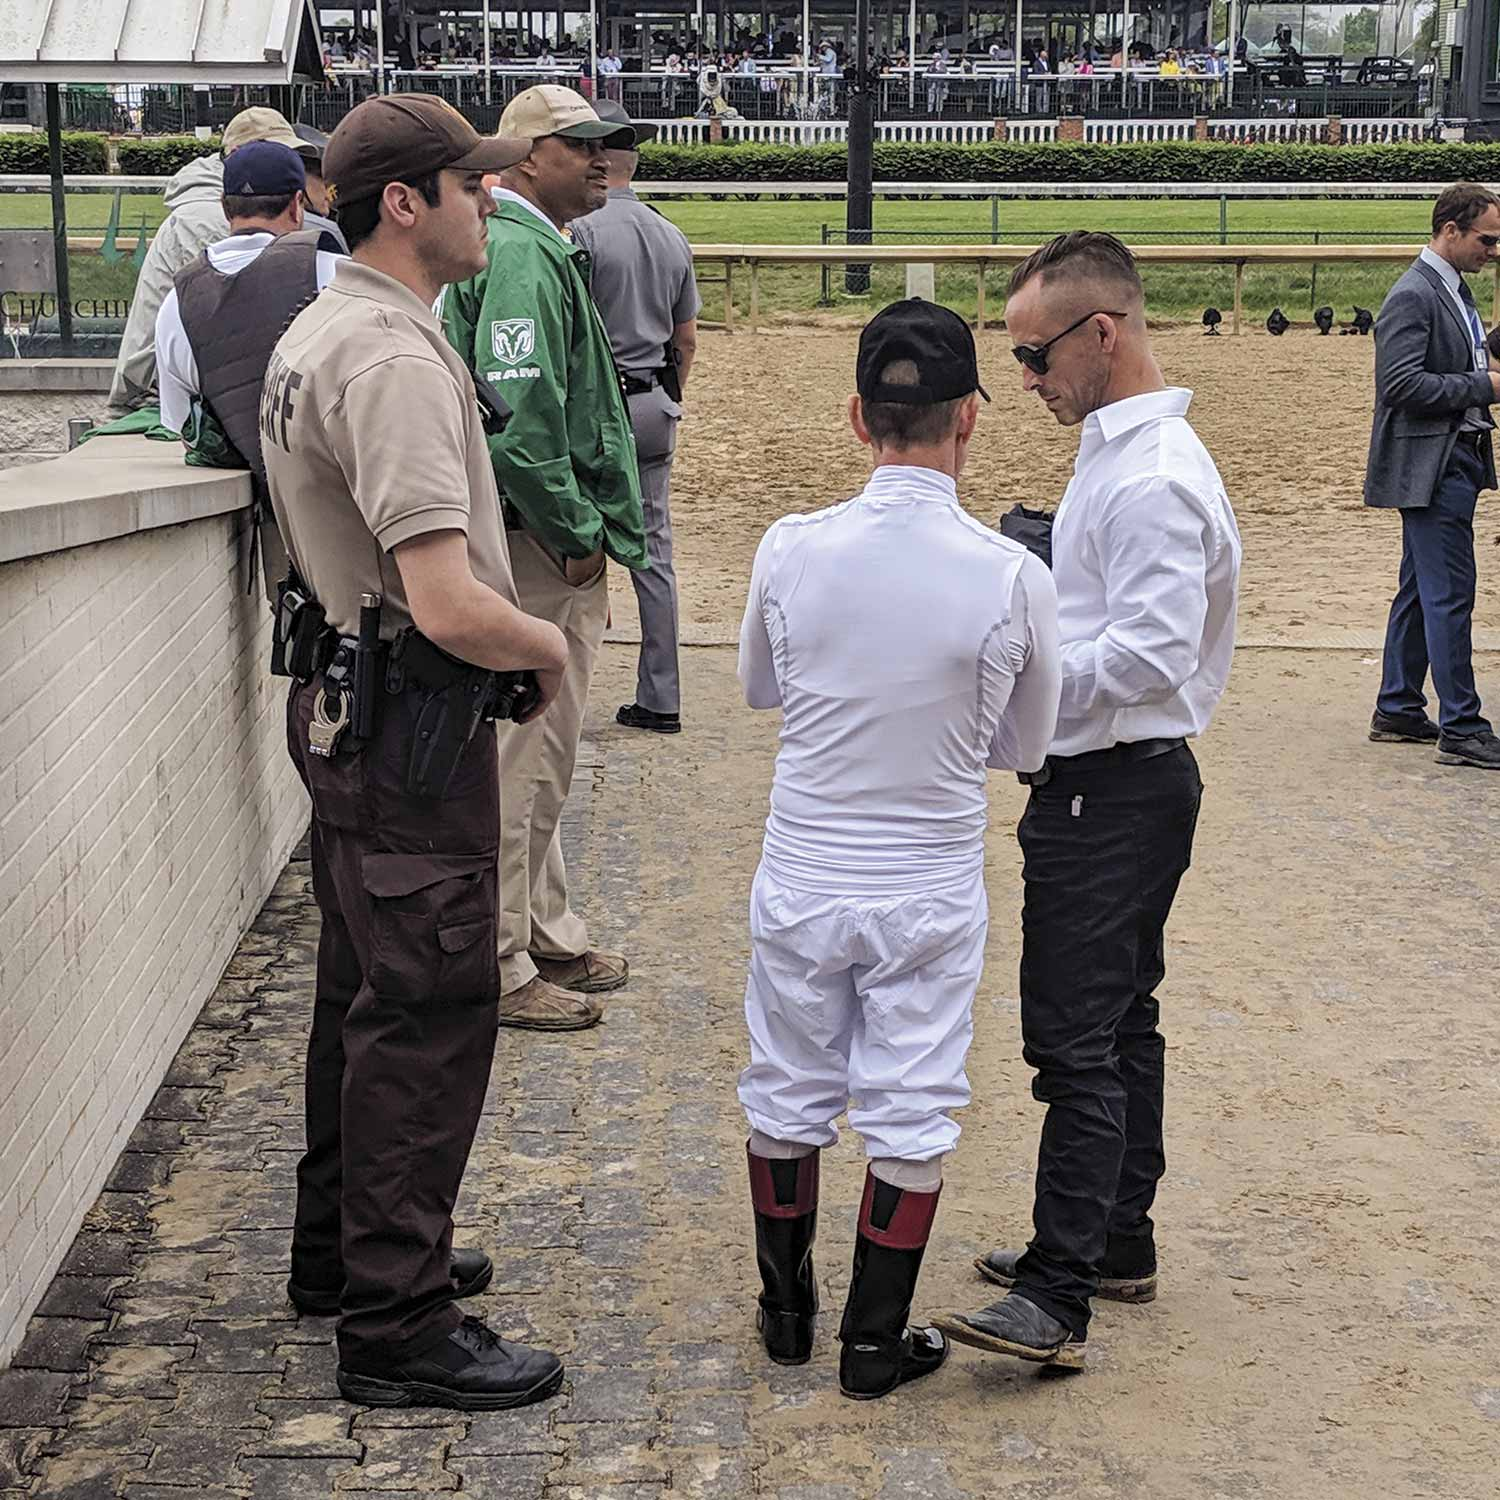 A Jefferson County sheriff's deputy monitors the area around the paddock during the 2019 Kentucky Derby. JCSO is one of the many partner agencies that help out during the Derby. (Photo by Michael A. Moore)